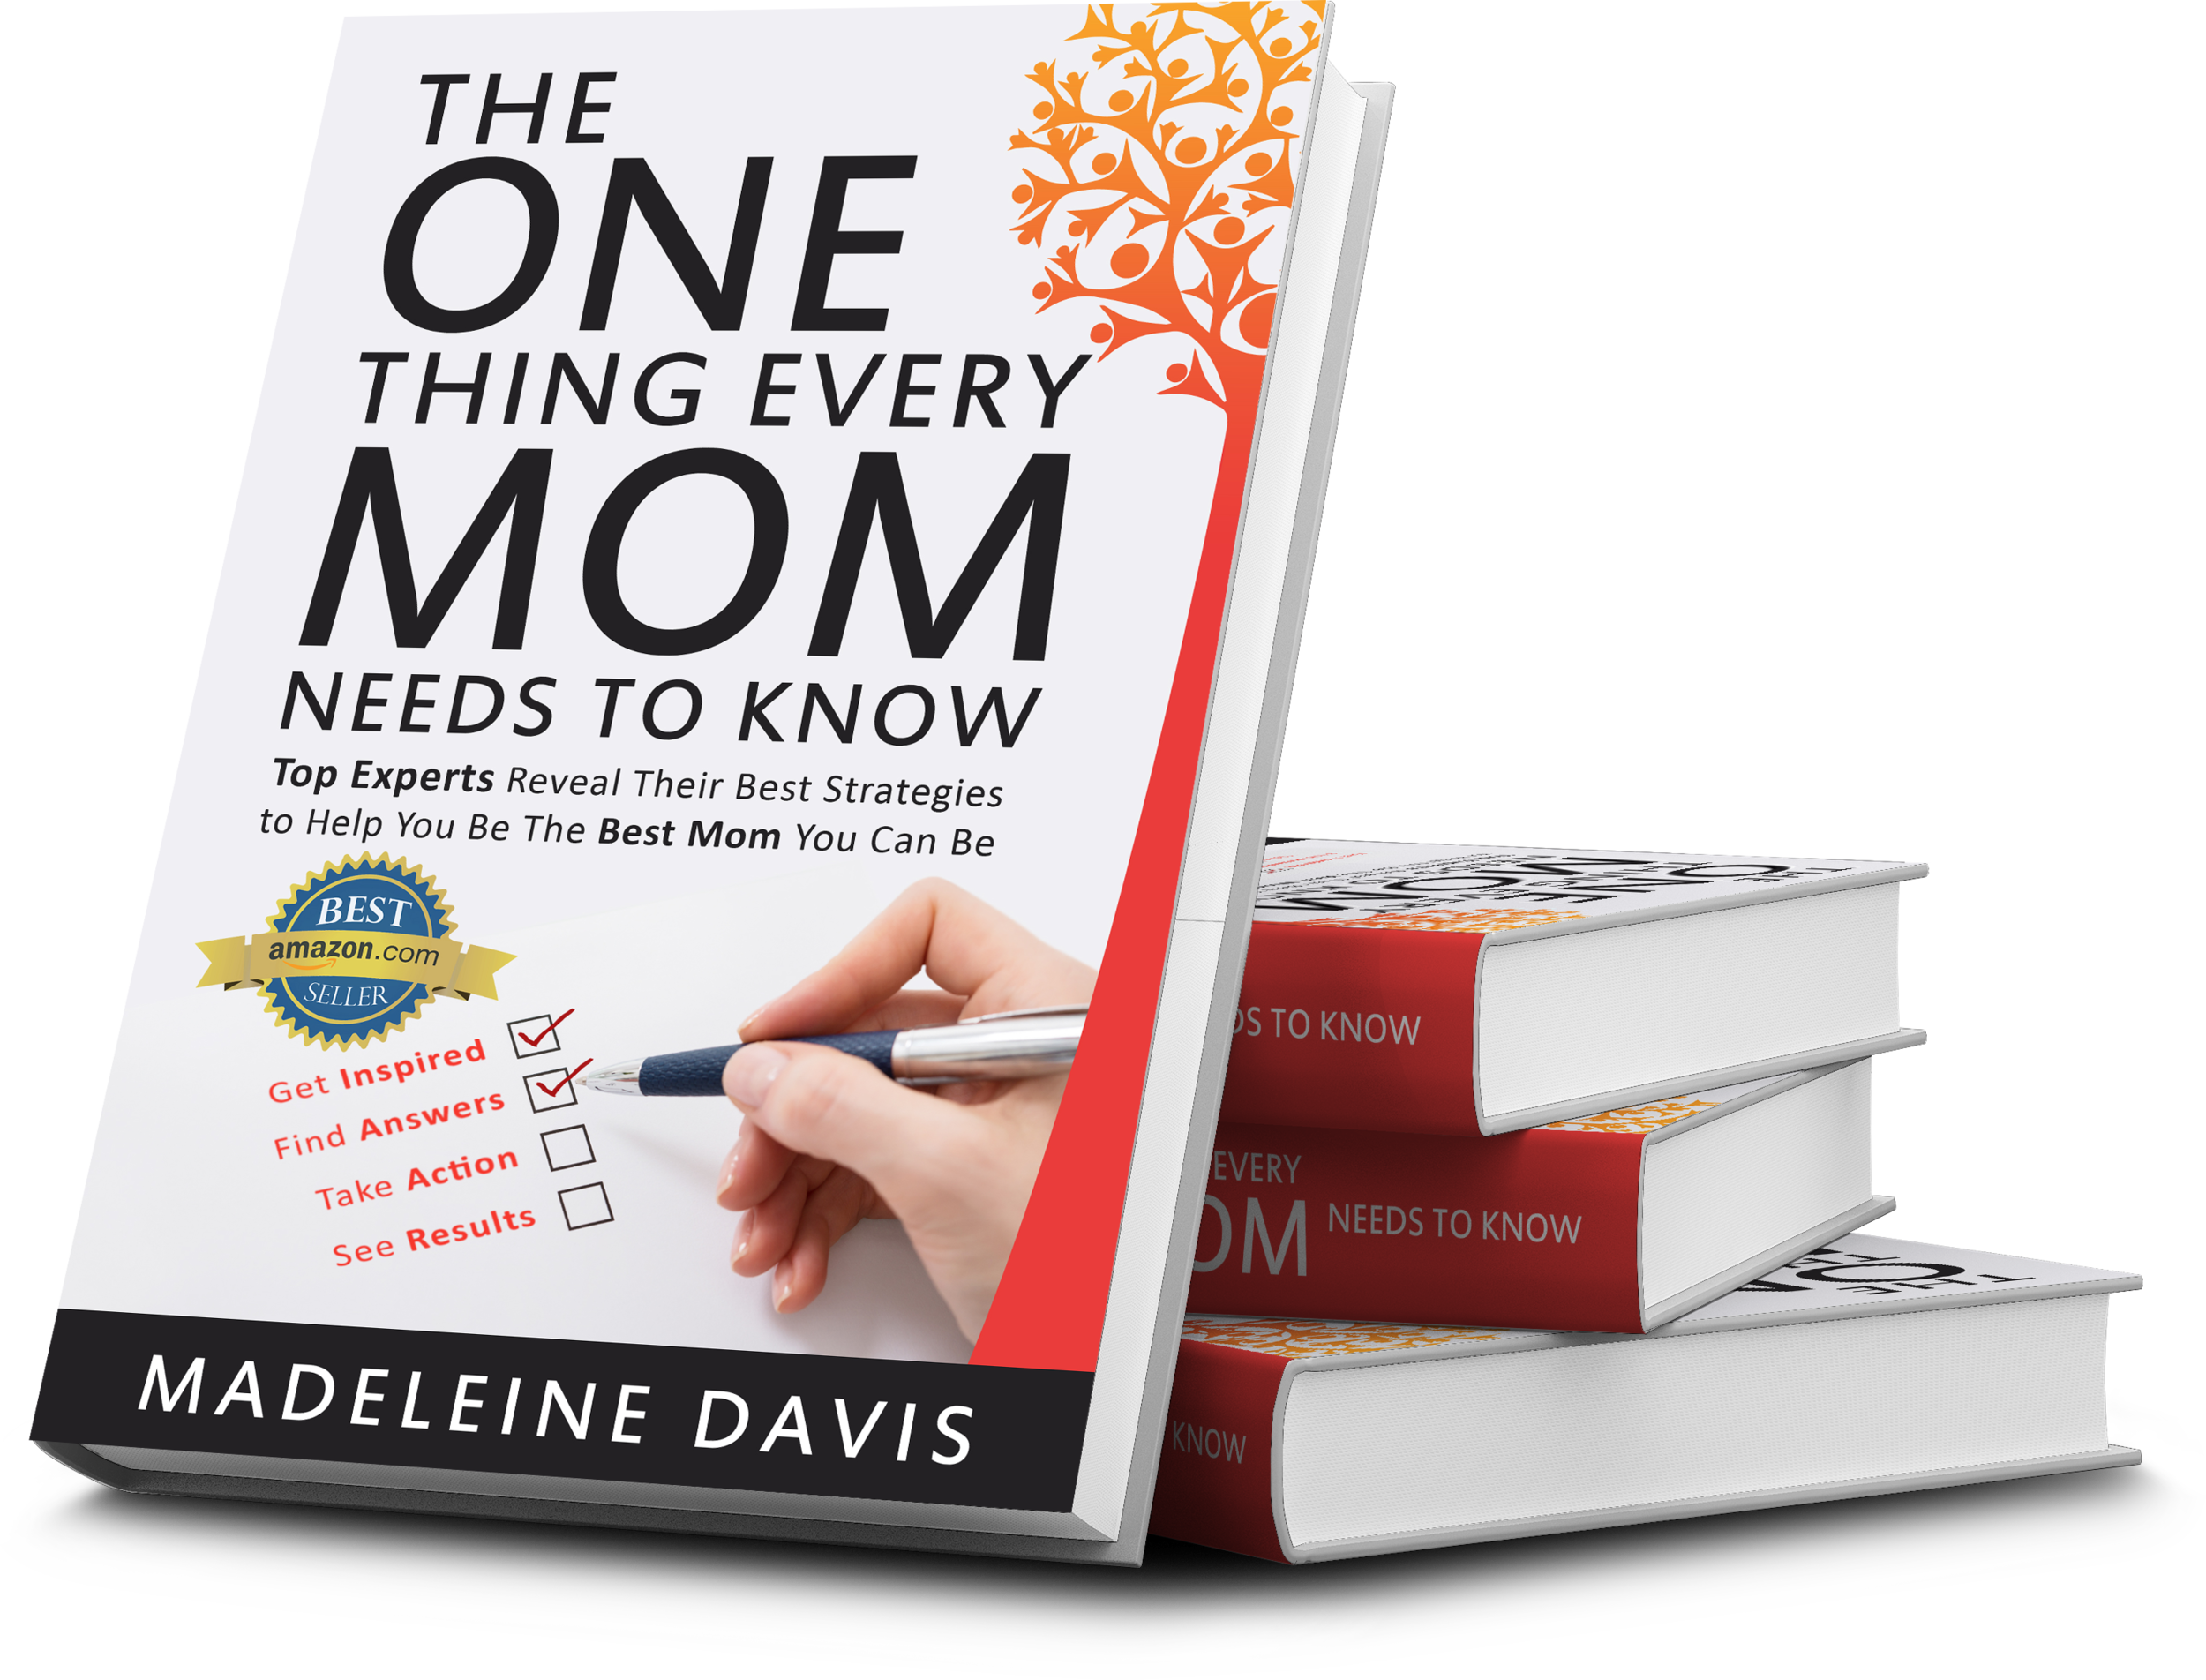 The One Thing every Mom needs to know_Bestseller2.png